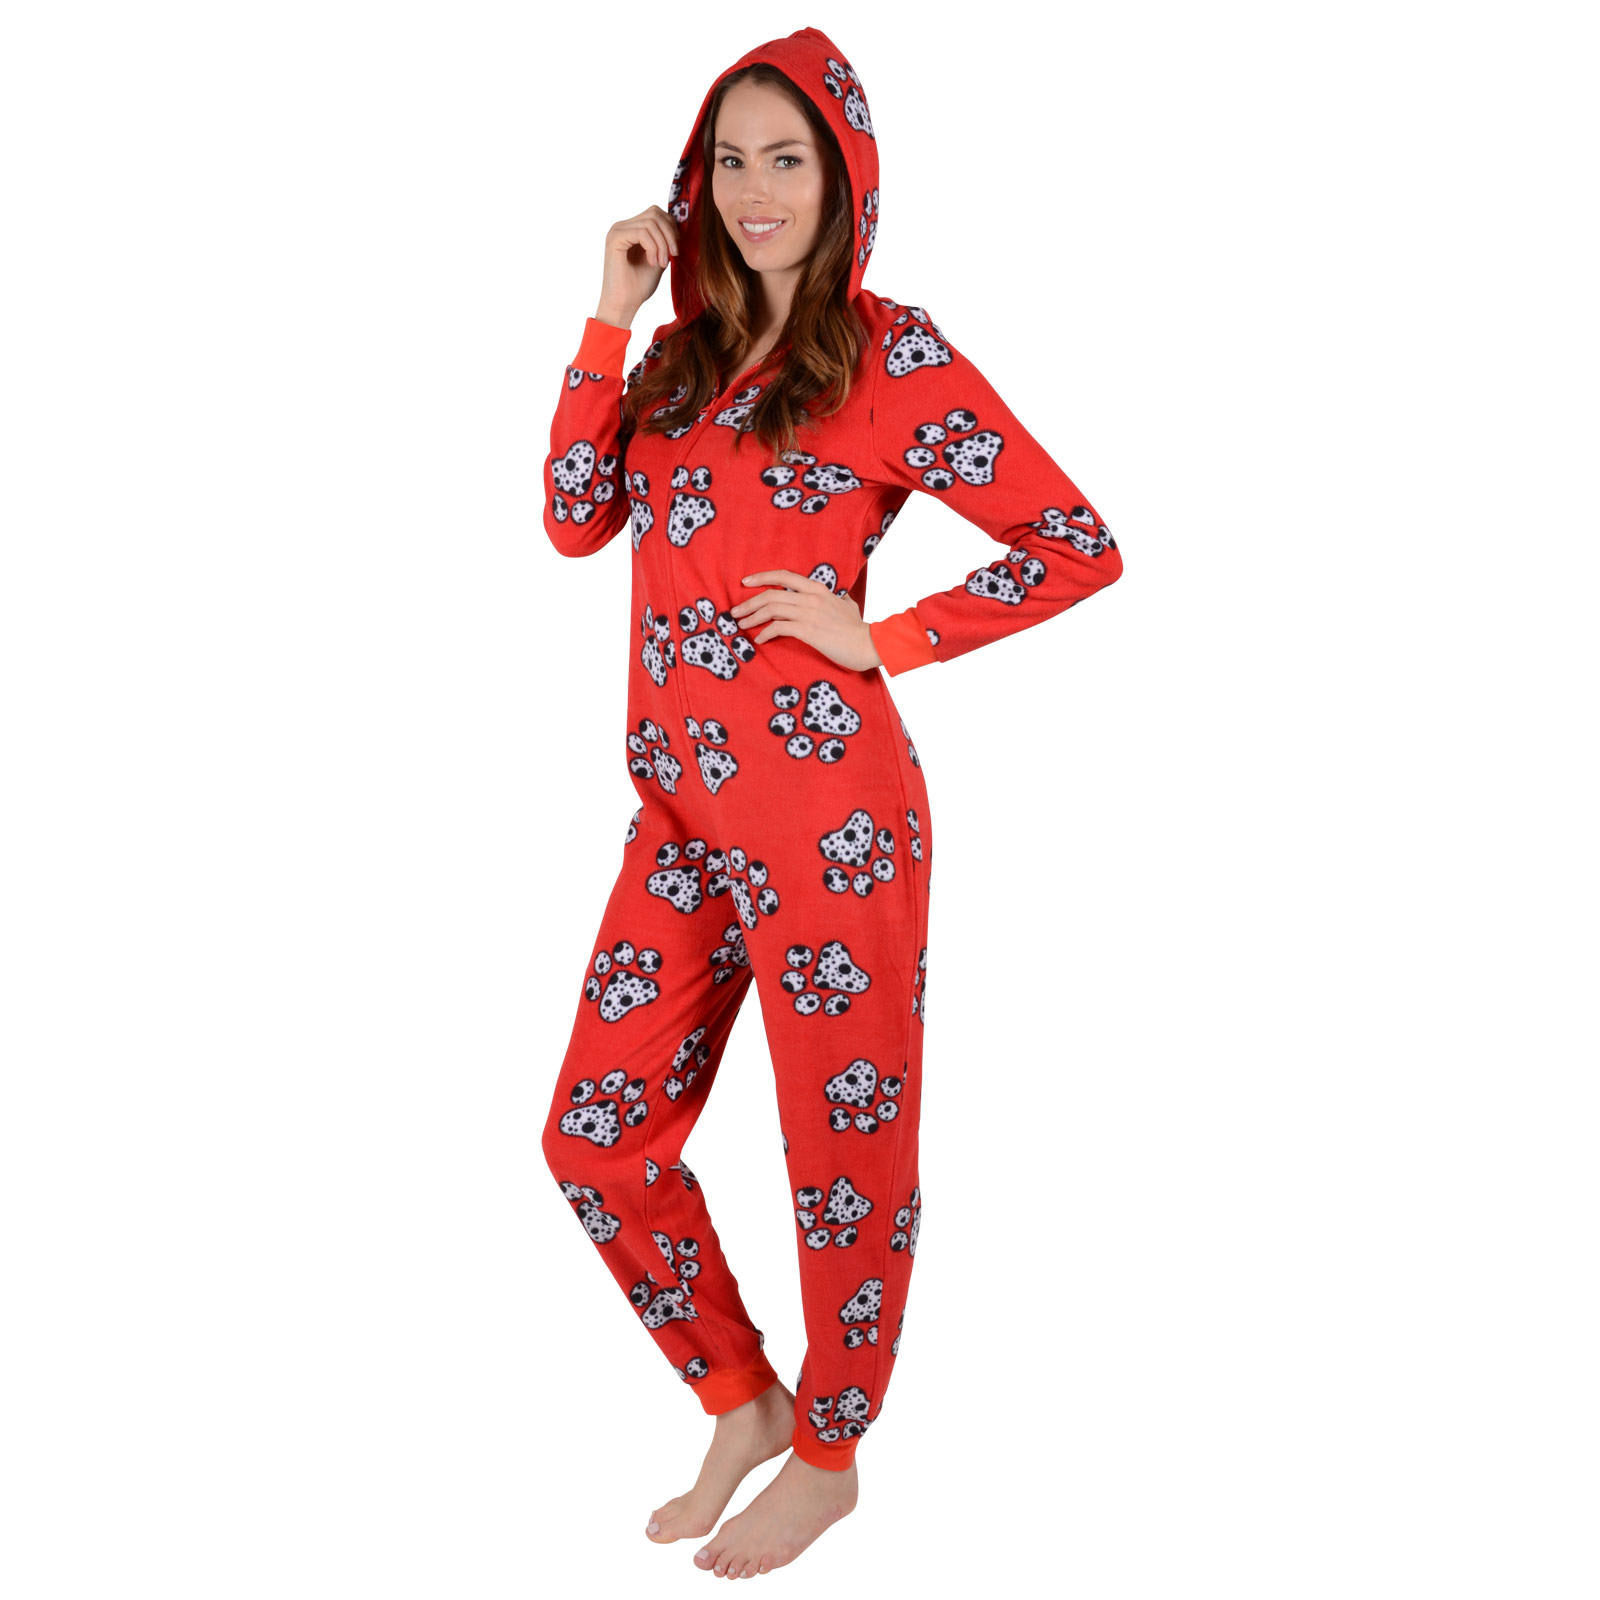 That's the perfect time to wear your loudest, proudest All In One Pajamas. Our extensive collection of All In One Pajamas in a wide variety of styles allow you to wear your passion around the house. Turn your interests, causes or fan favorites into a killer comfy pajama set.